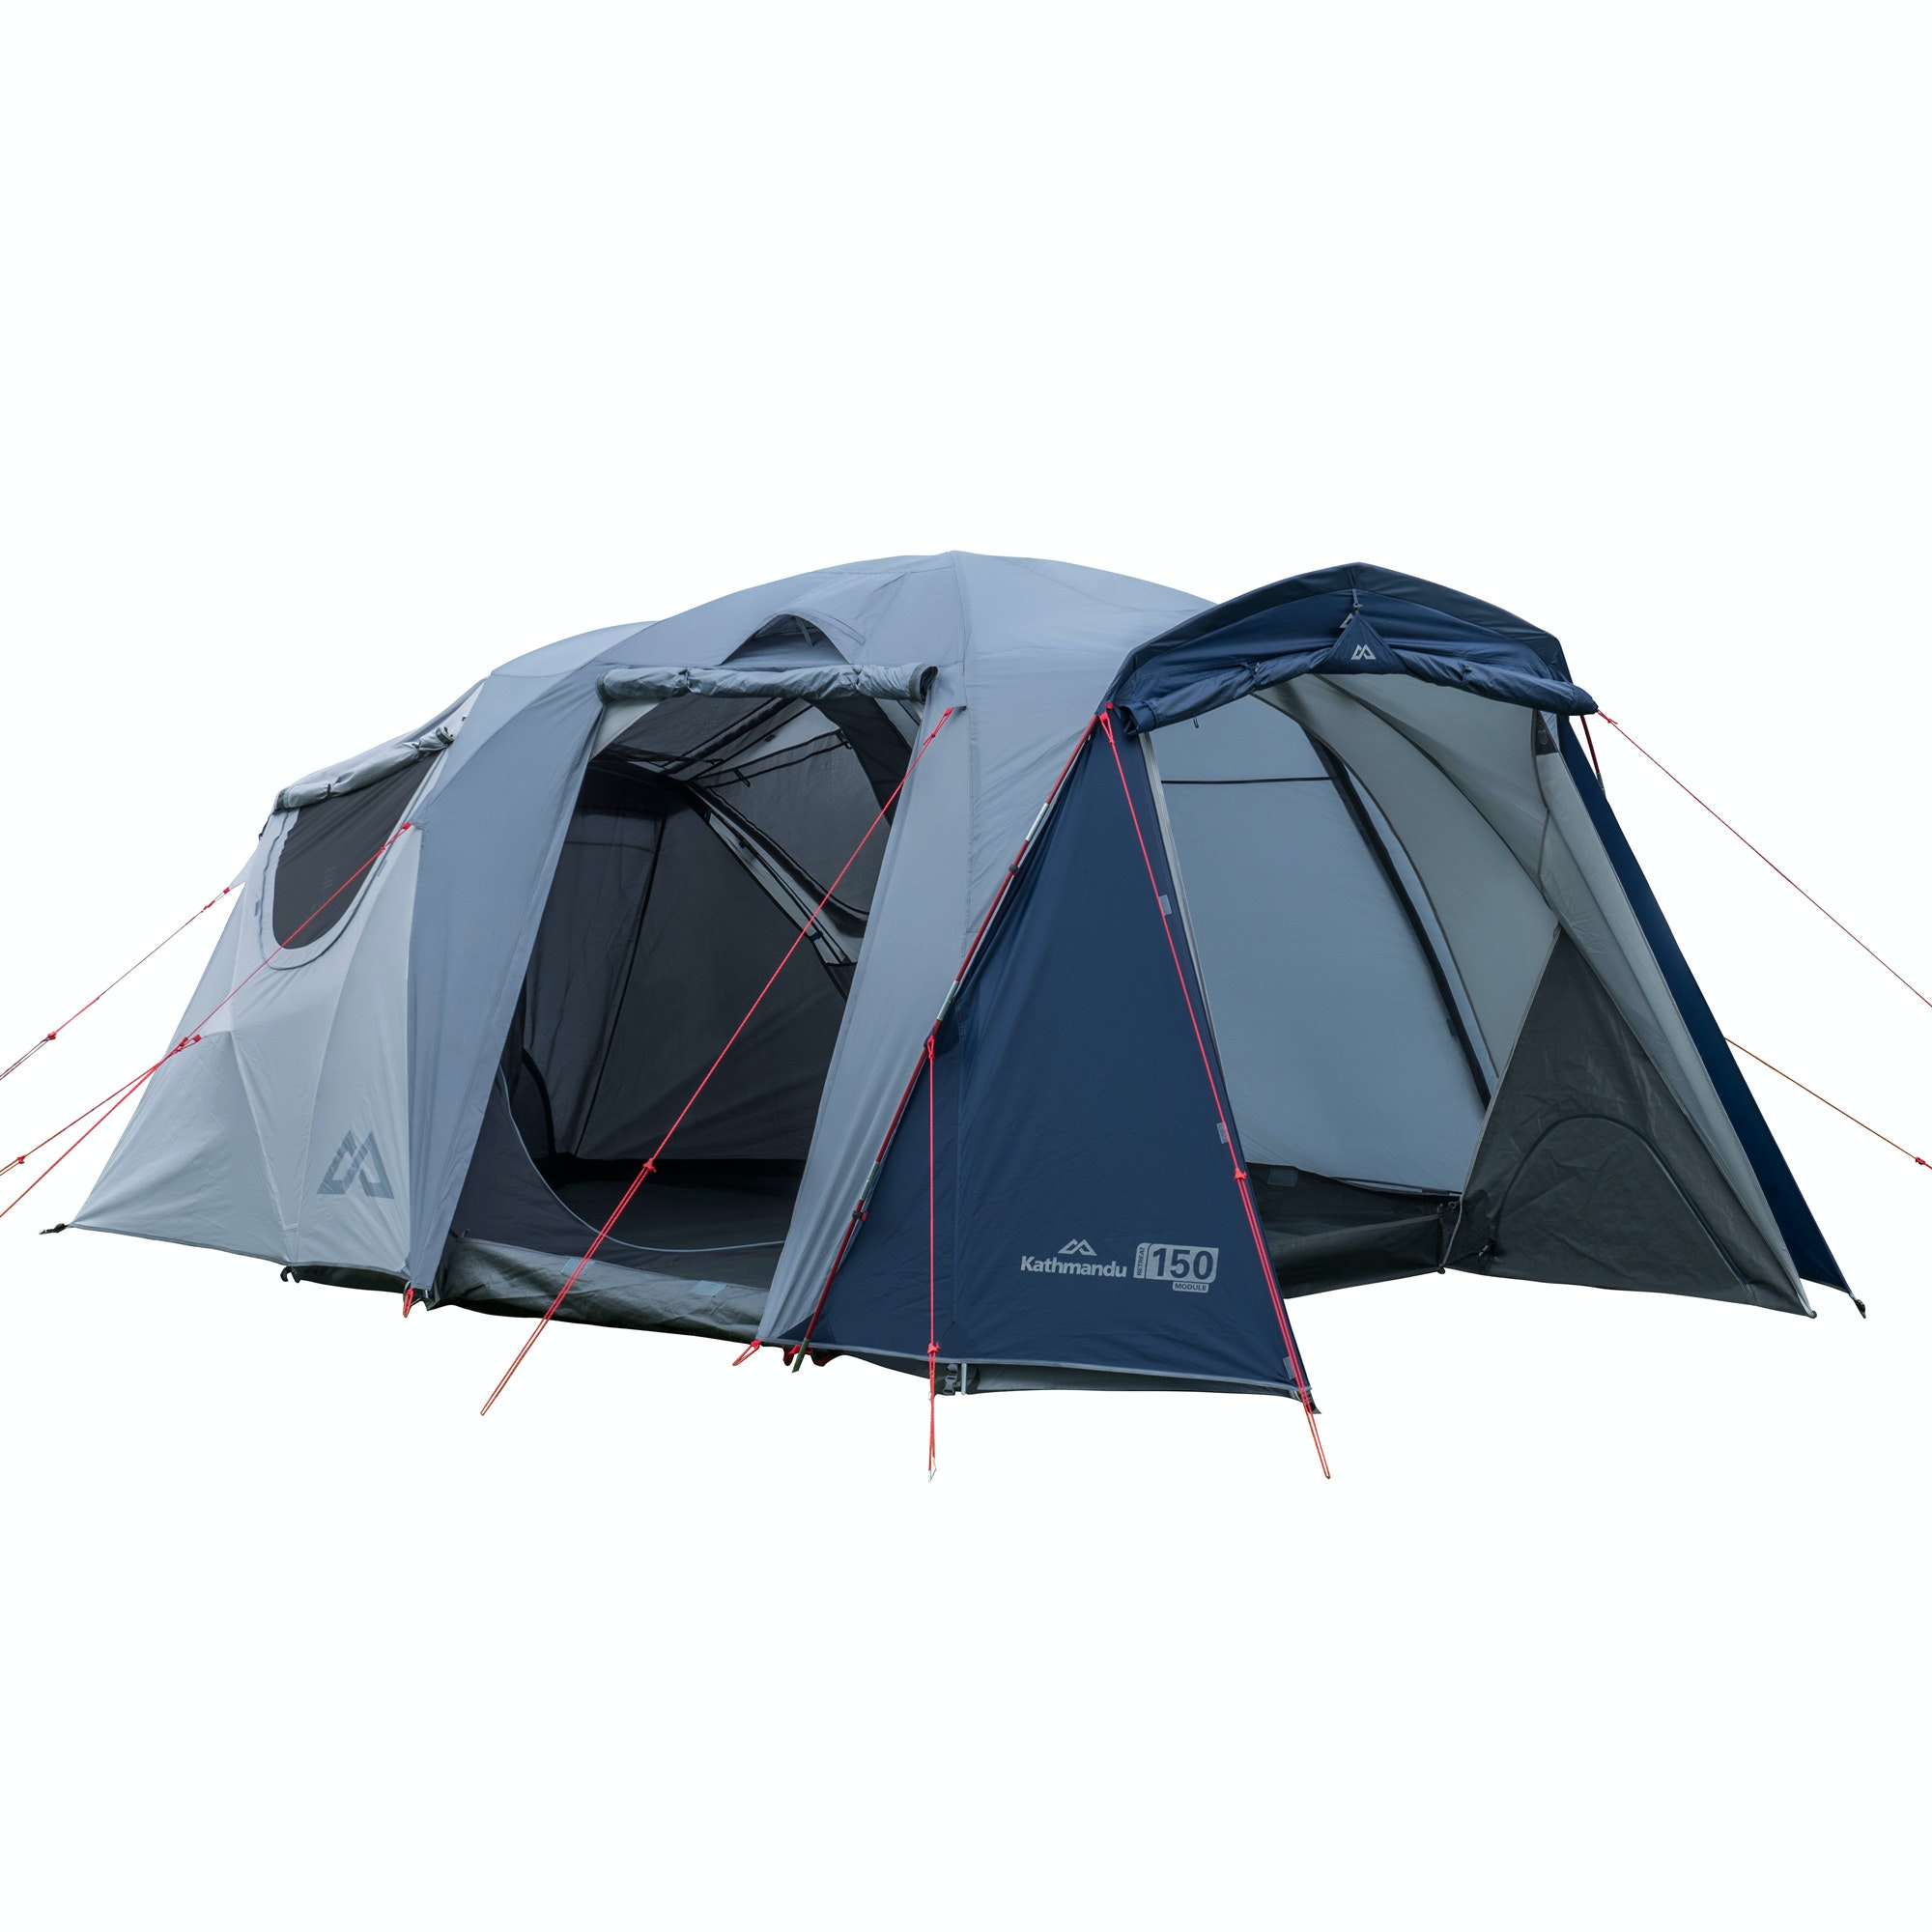 Kathmandu retreat 150 3 person module 2 room camping dome for Small 3 room tent